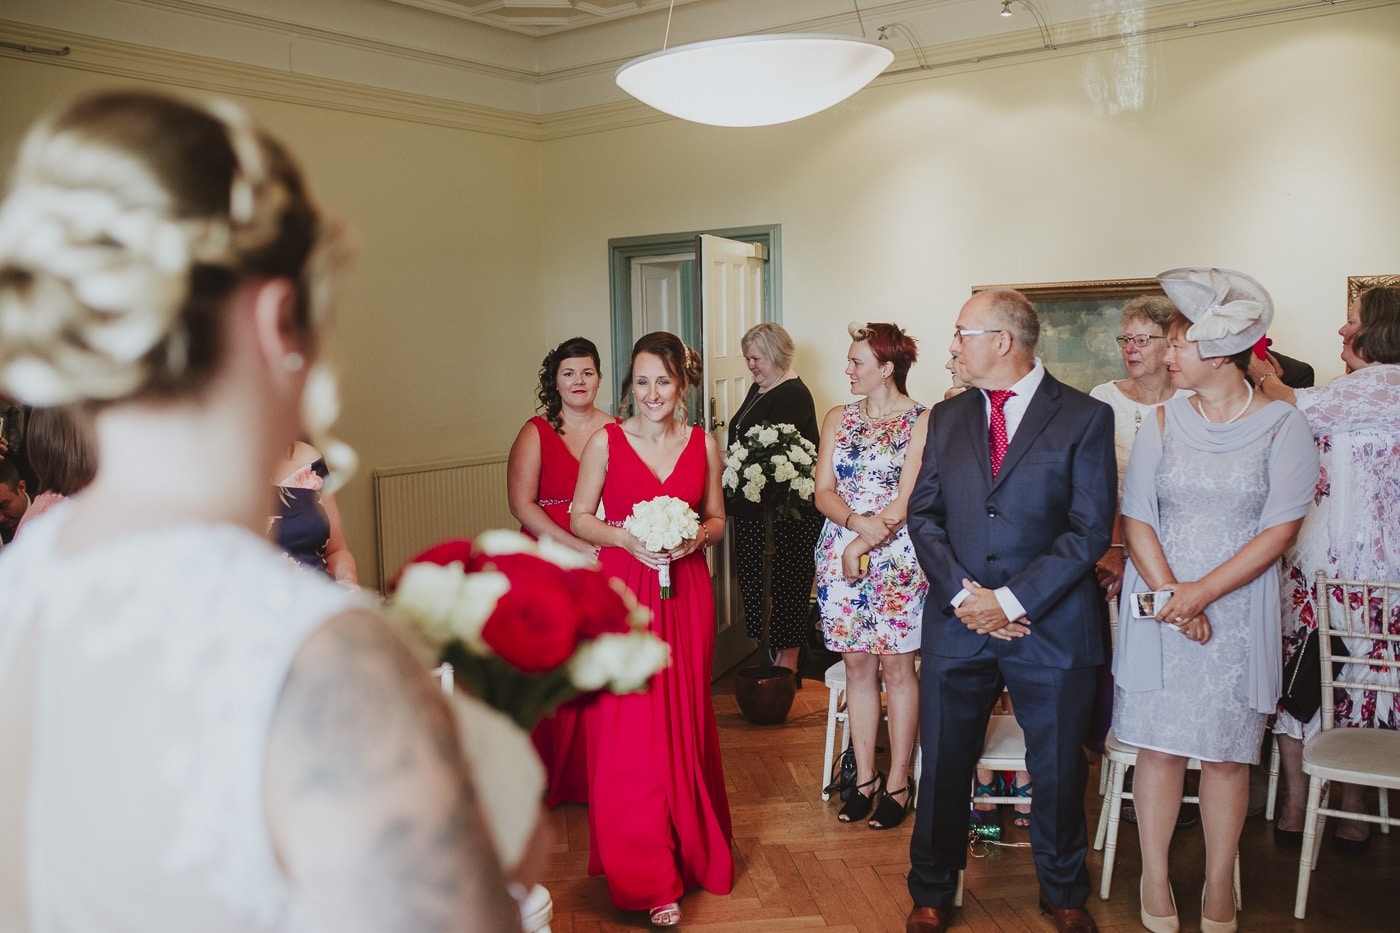 Bridesmaids walk down the aisle for wedding by Joshua Wyborn photography